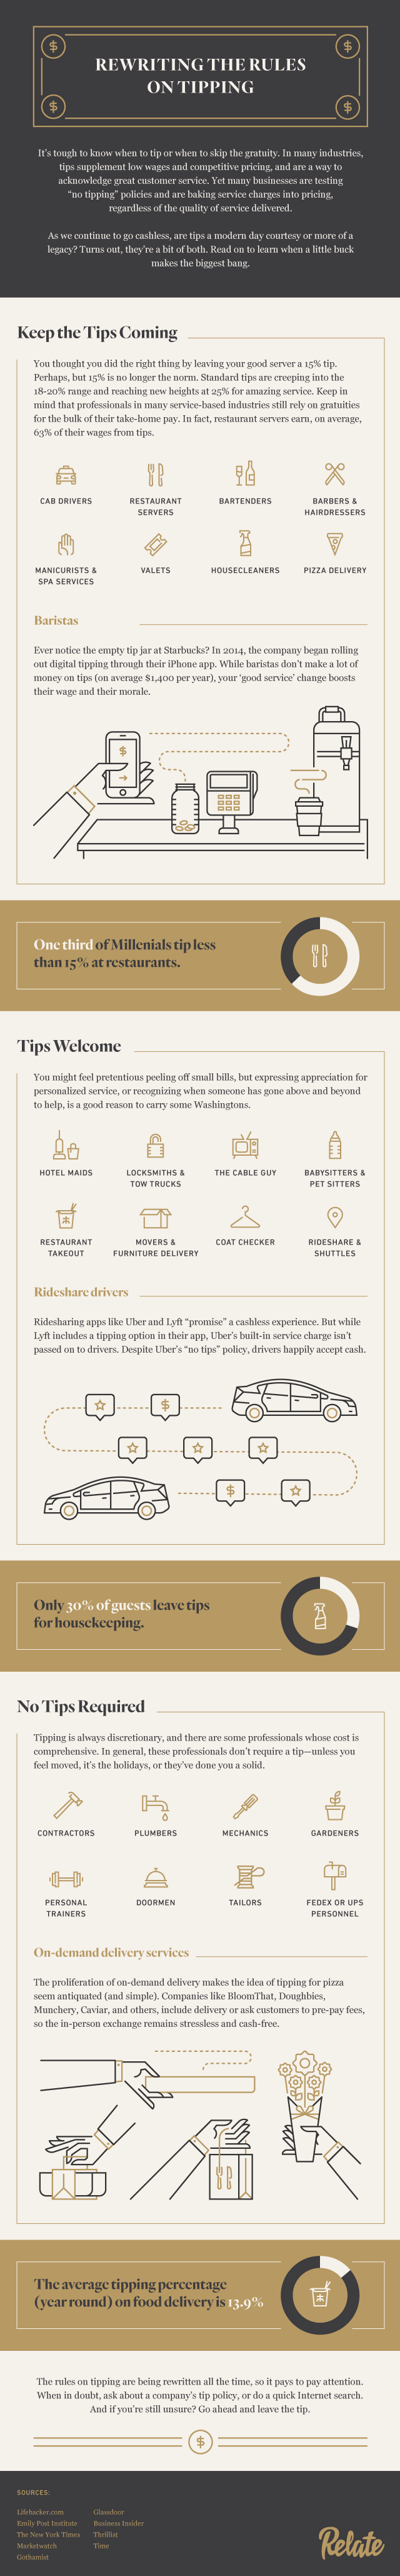 Relate Tipping Guide infographic